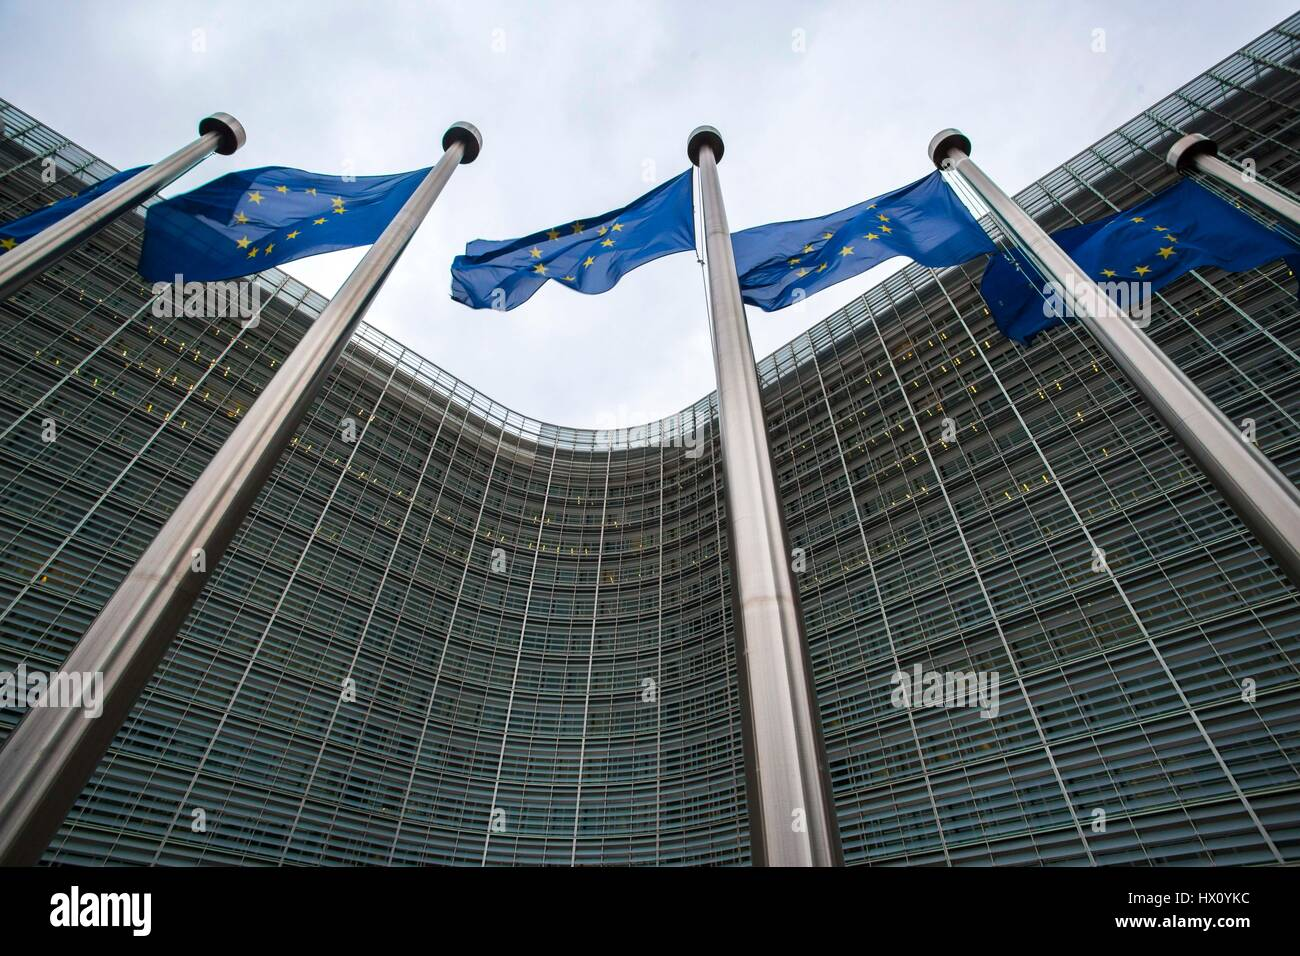 EU flags wave next to the Berlaymont building, headquarters of the European Commission in Brussels, Belgium - Stock Image